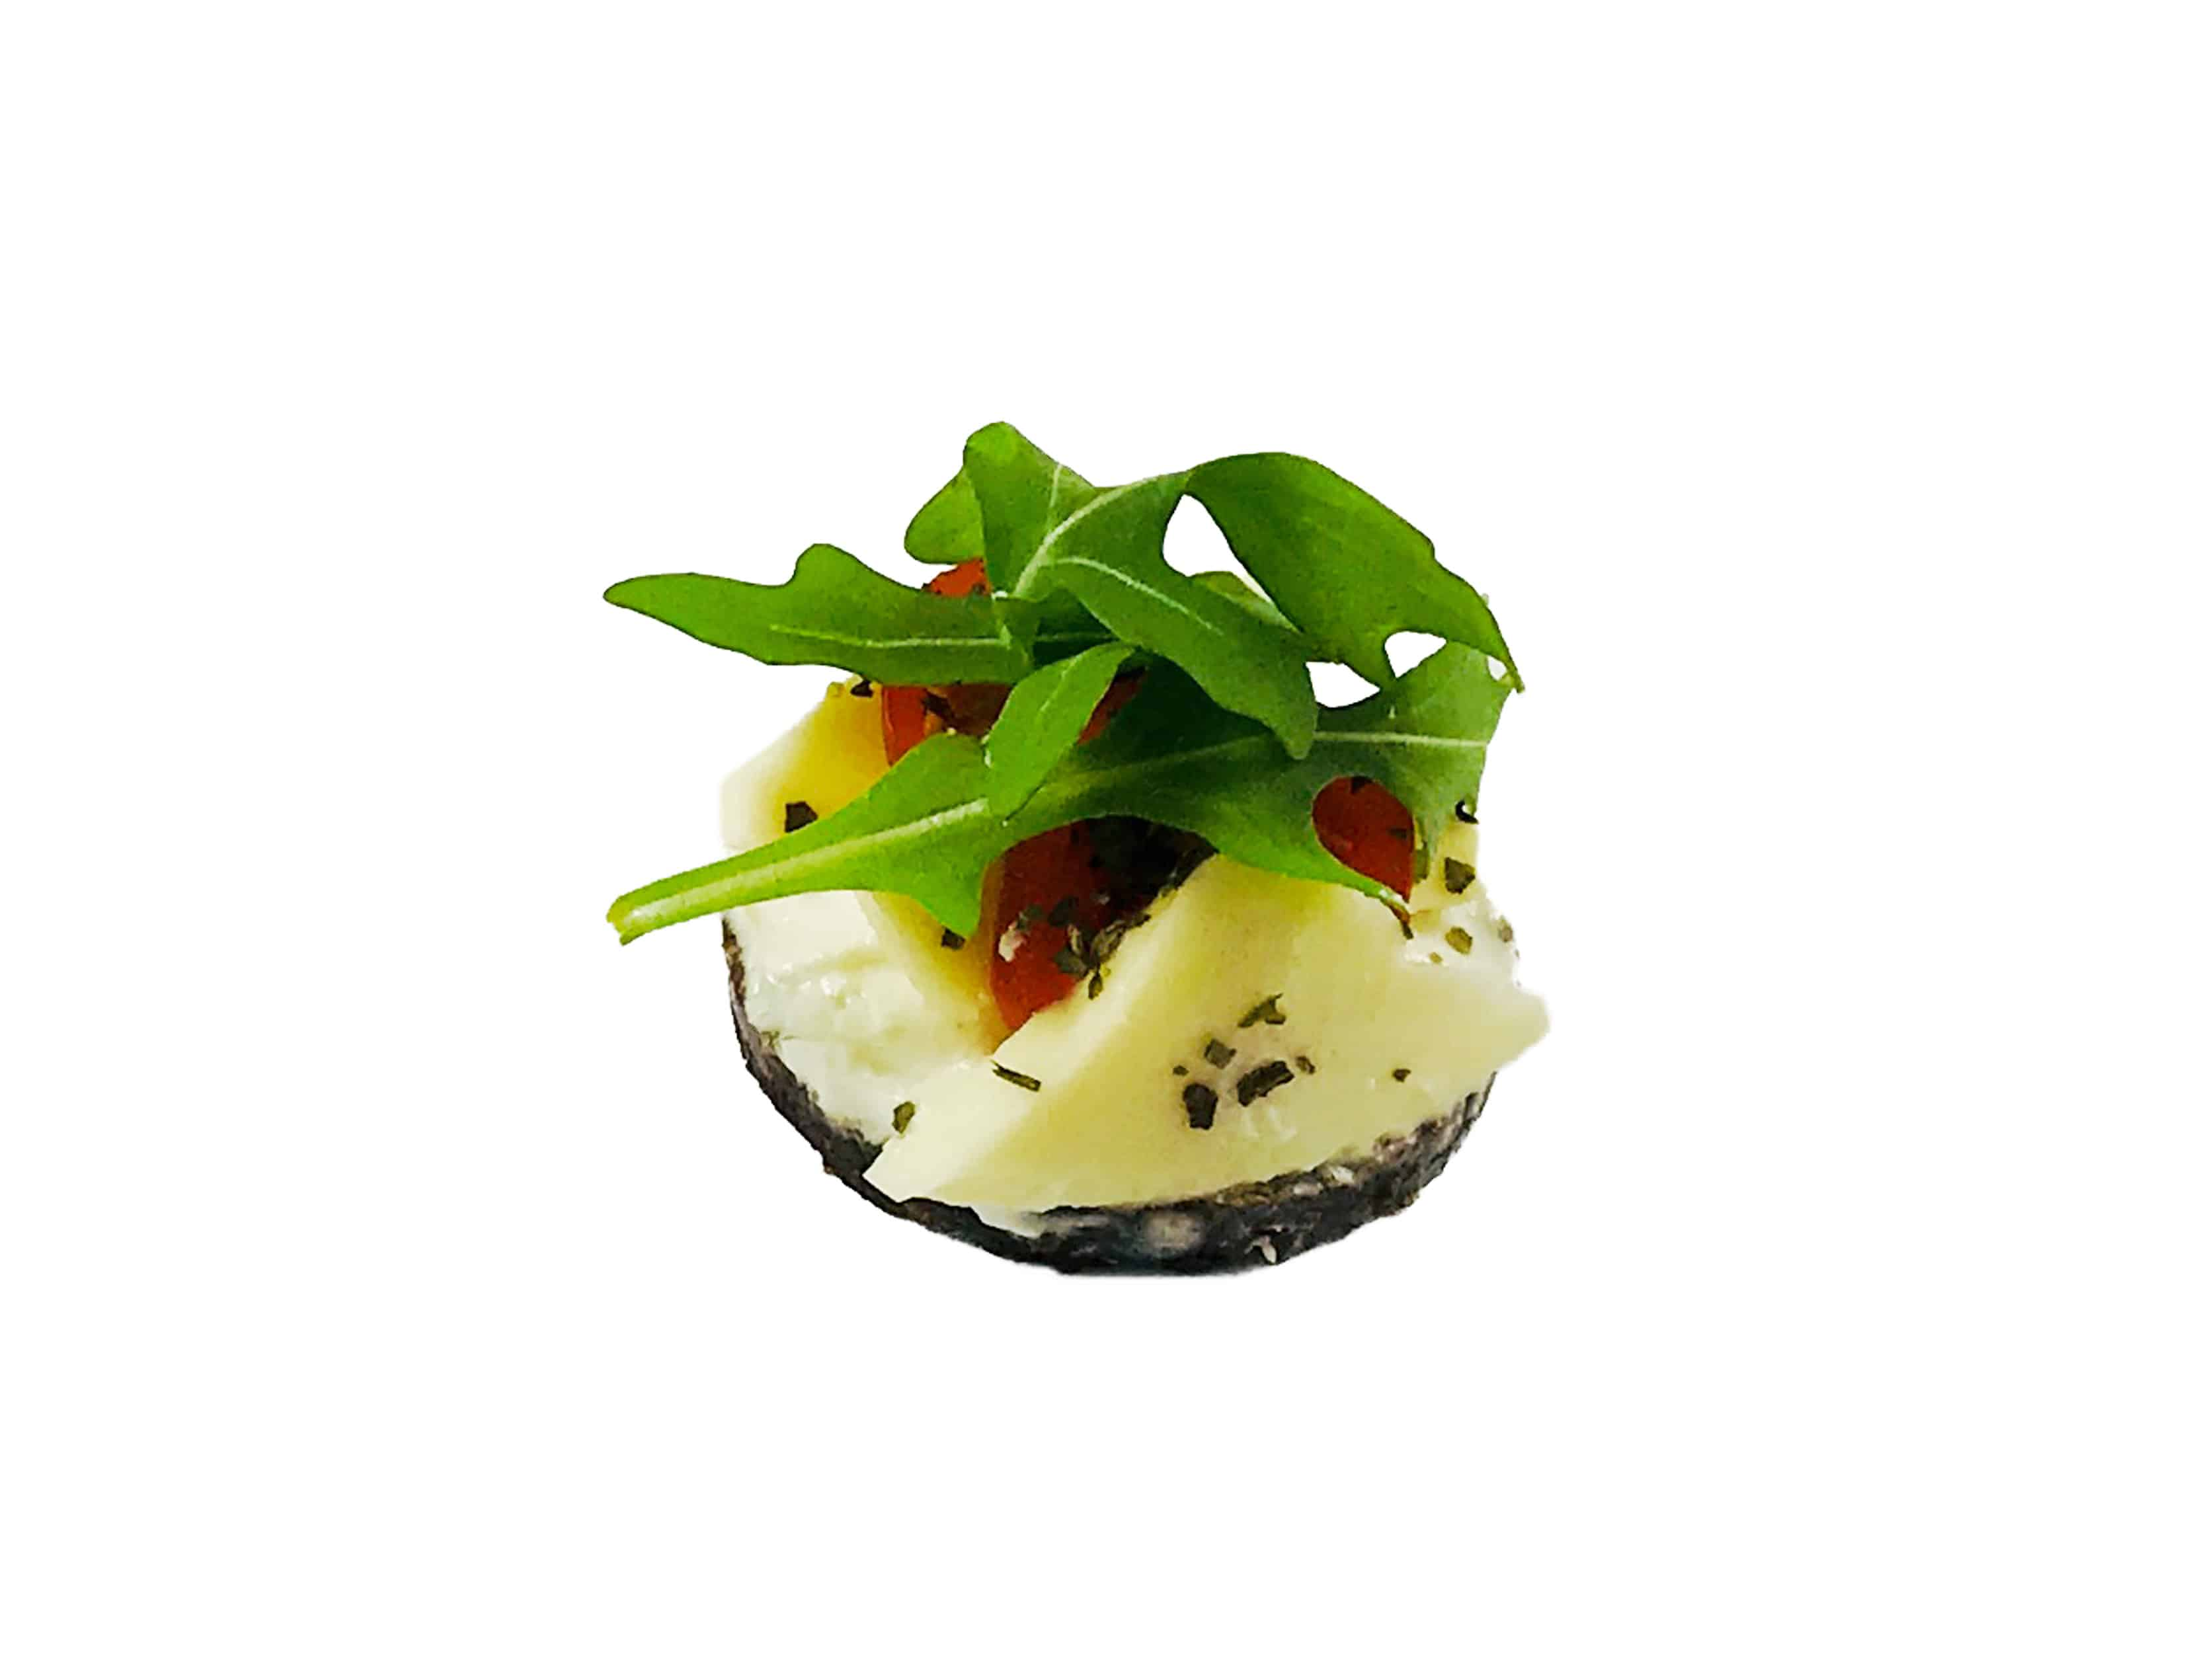 Canape mozzarella tomate b rlifood business catering for Mozzarella canape